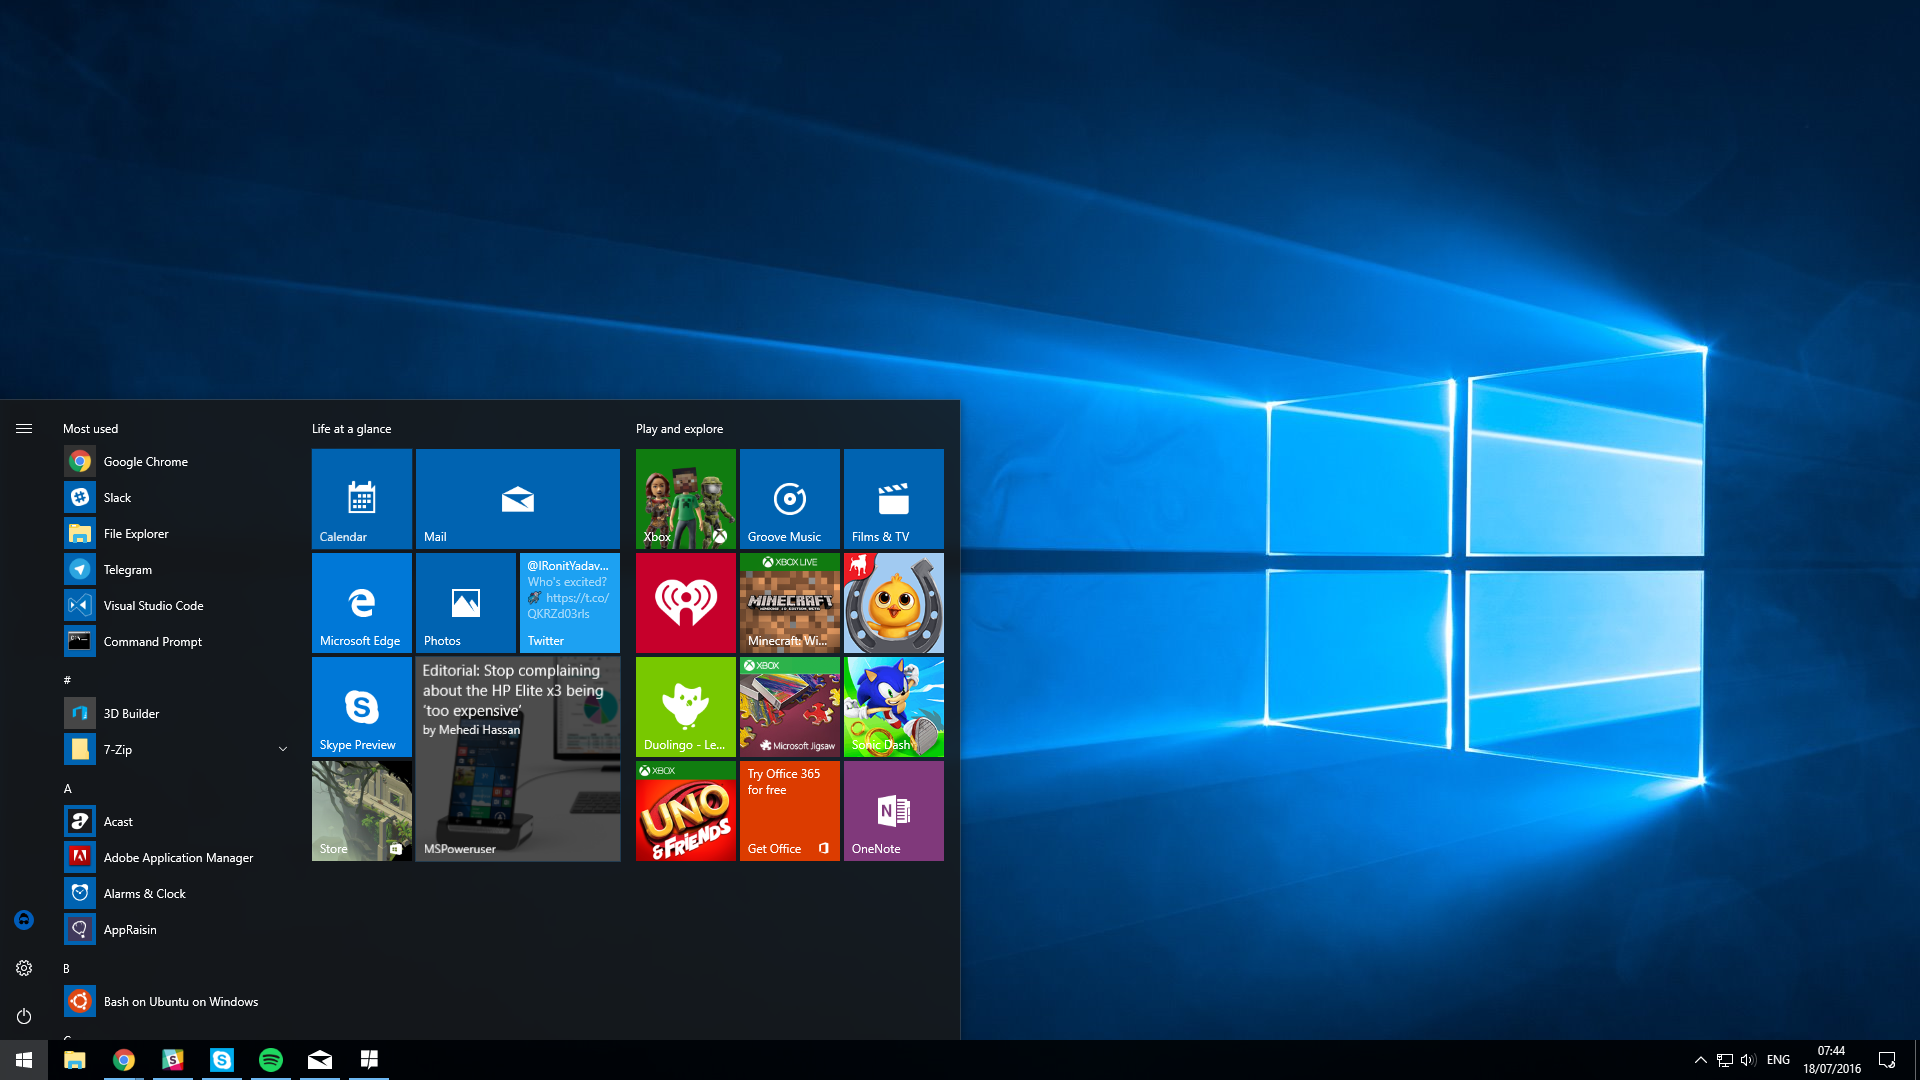 microsoft releases windows 10 anniversary update 39 s rtm to